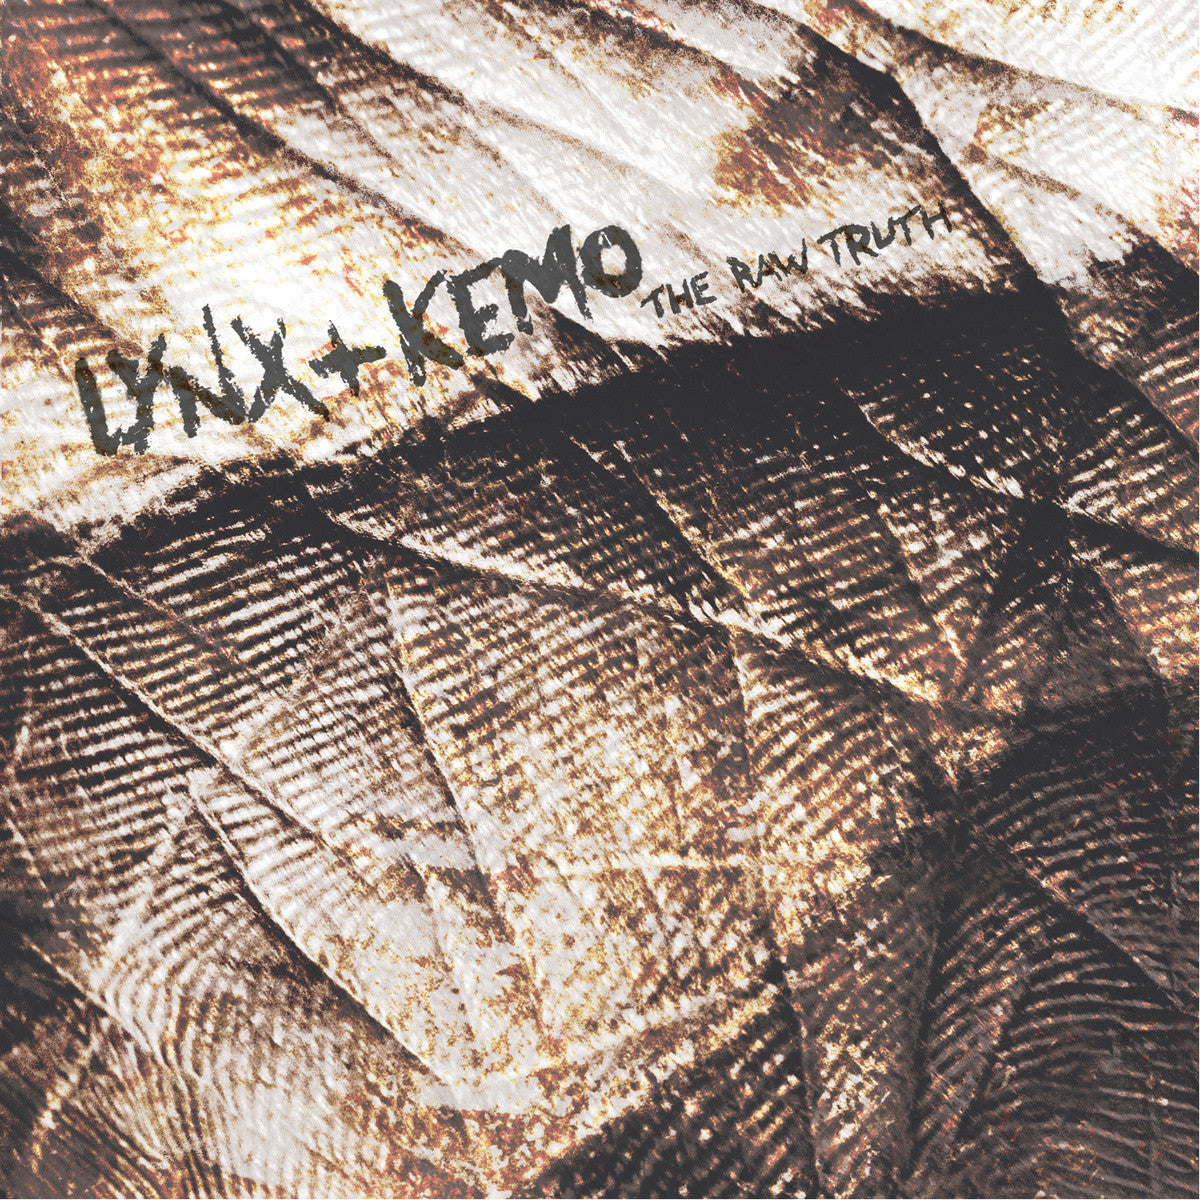 Lynx & Kemo - The Raw Truth , CD - Soulr, Unearthed Sounds